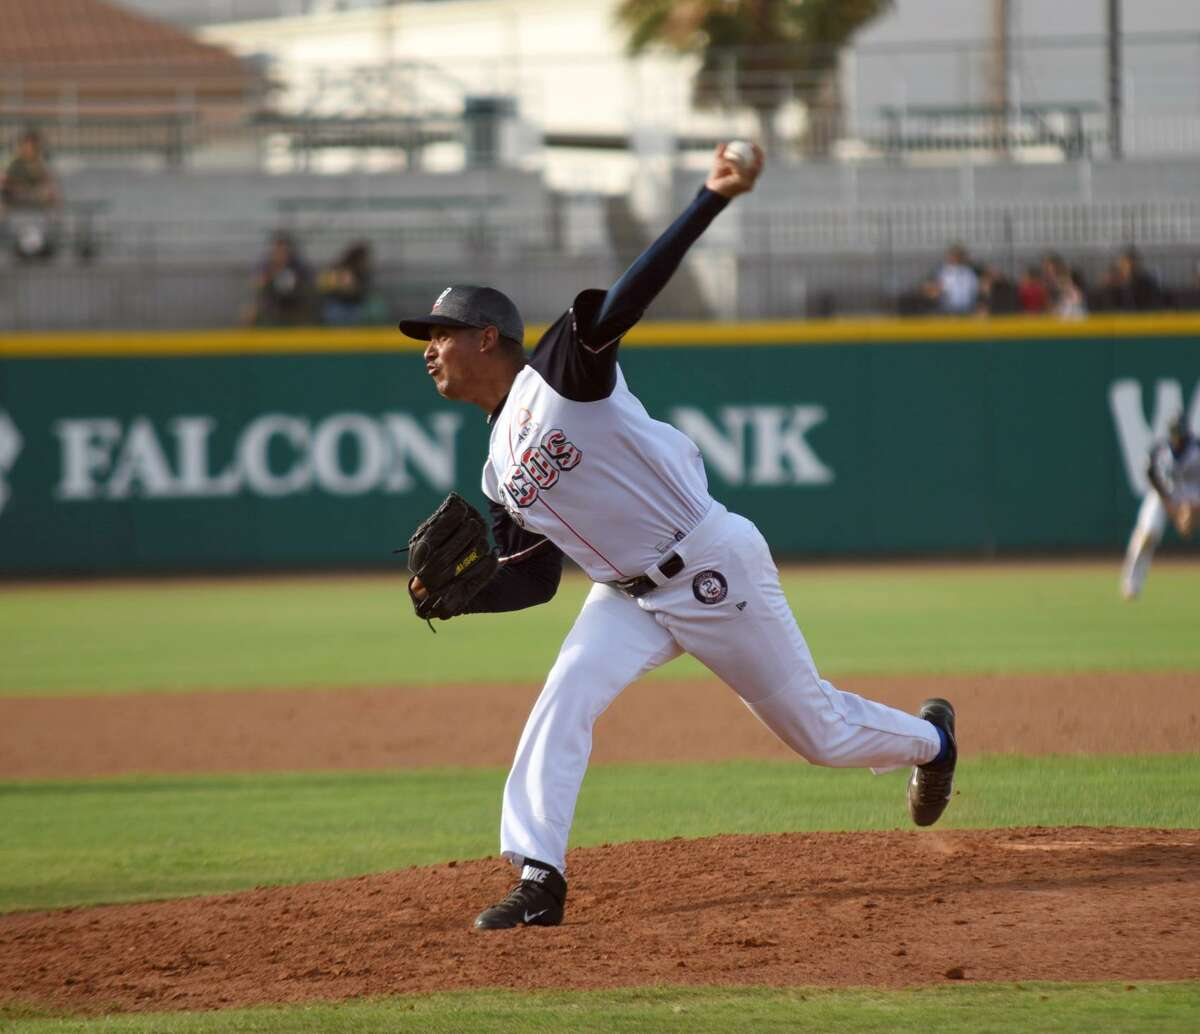 The Tecolotes' Jose Antonio Pena lasted three innings giving up one run on five hits, becoming the sixth starting pitcher in the team's 12 games to fail to throw more than three innings.